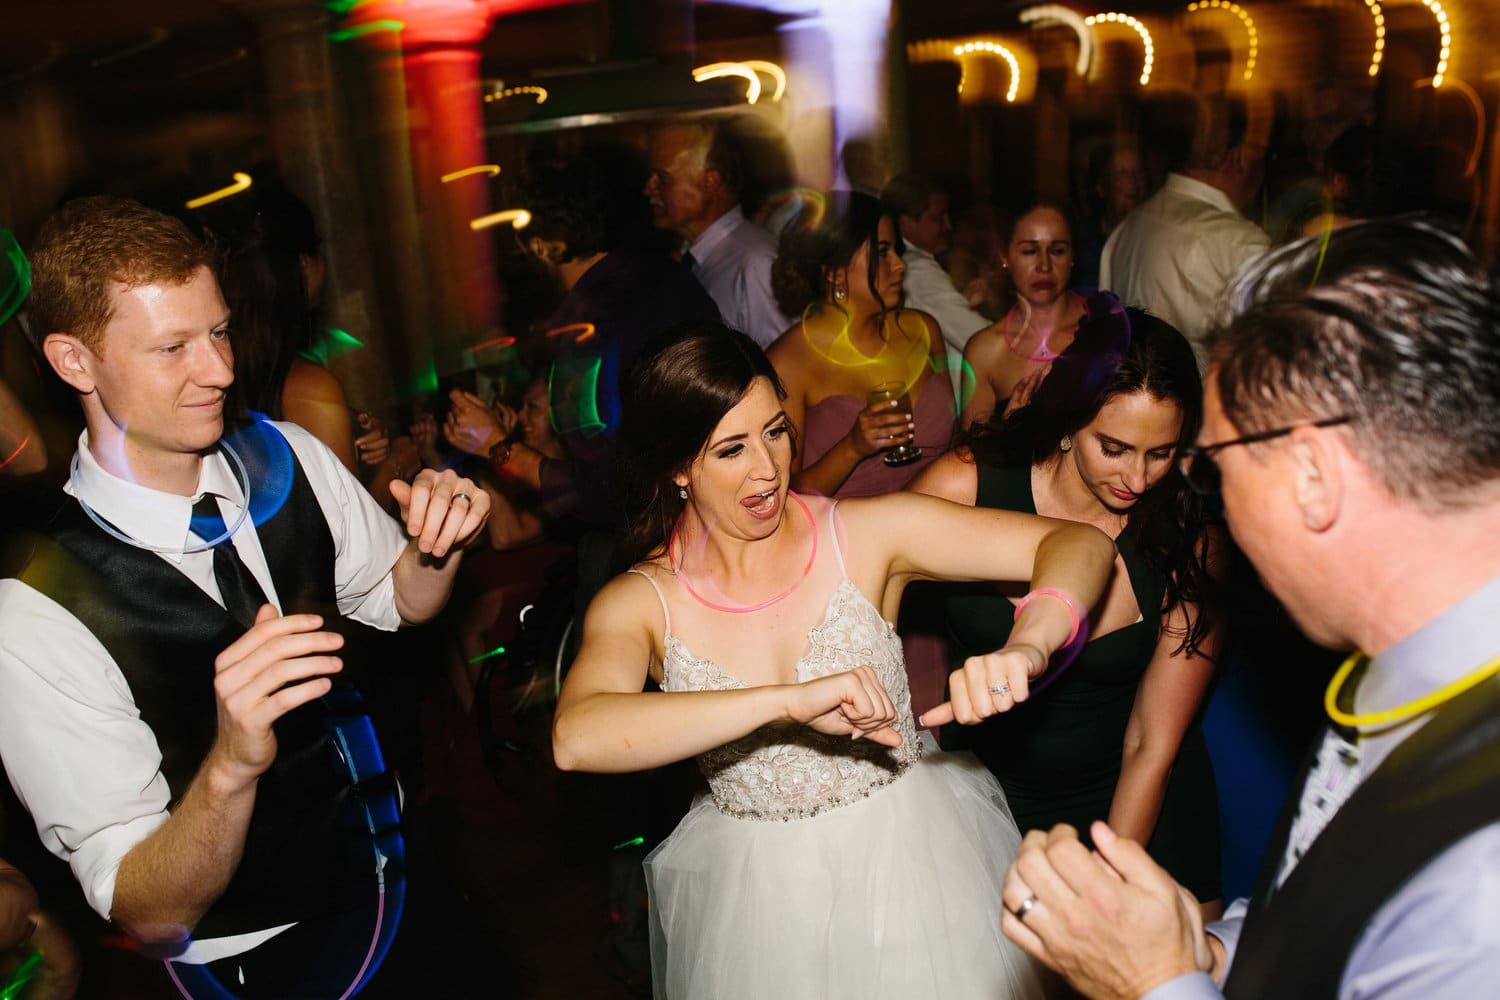 bride and guests party with glow sticks